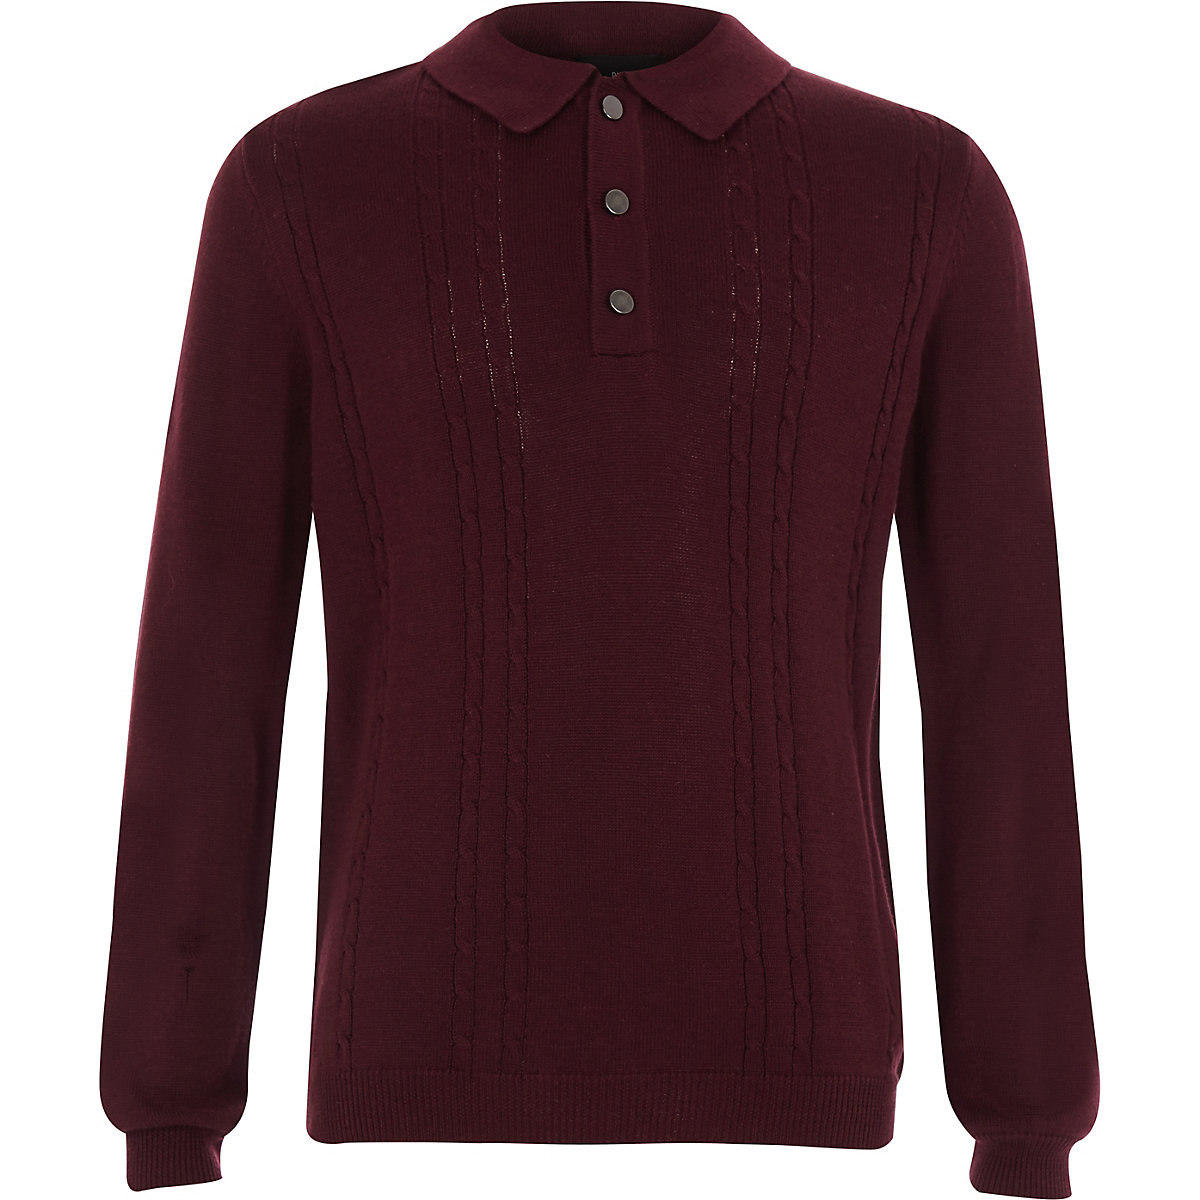 Boys dark red knitted long sleeve polo shirt